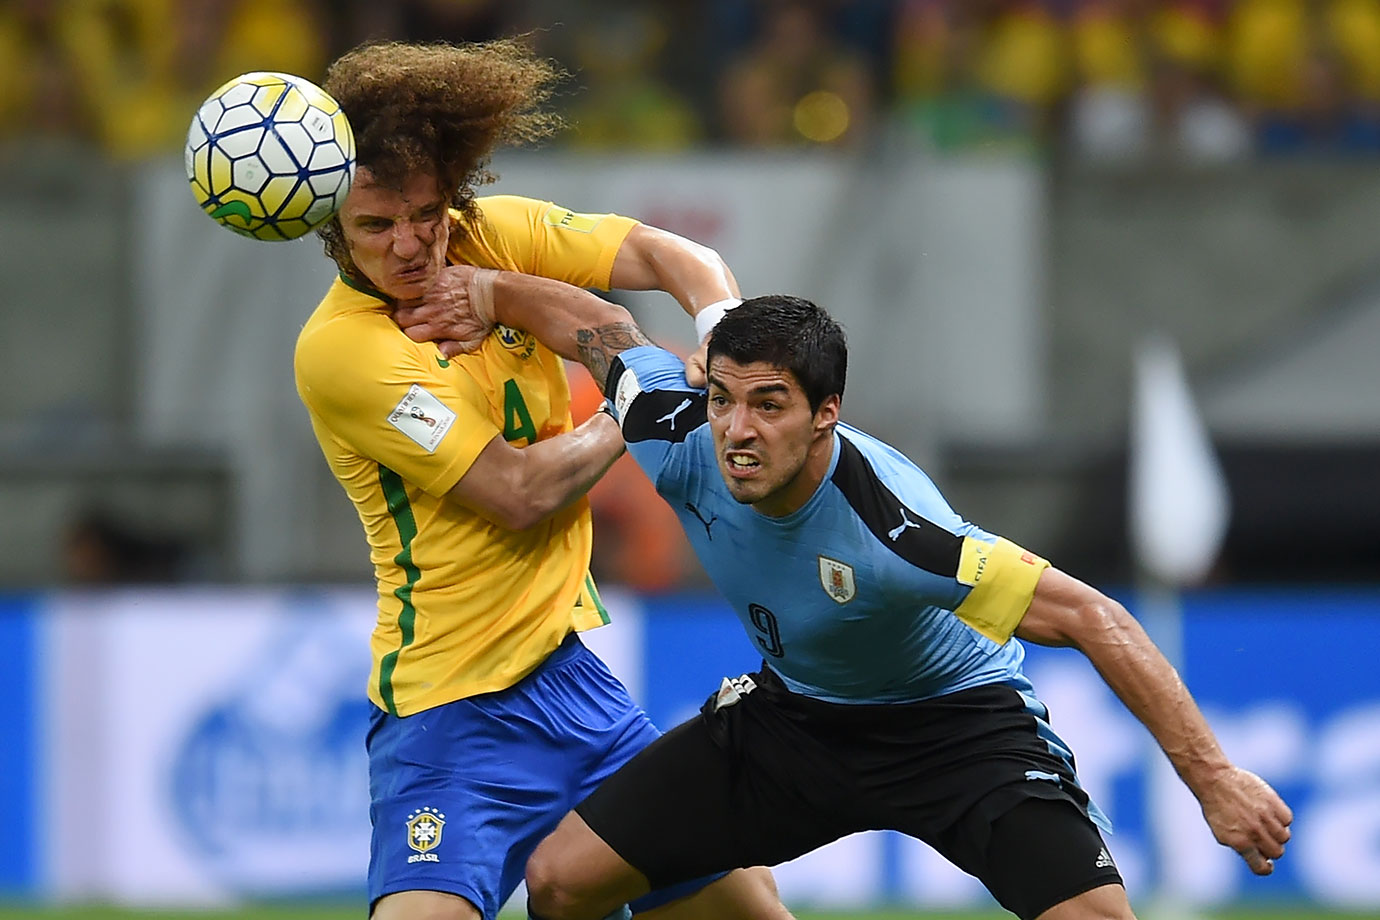 Brazil's David Luiz struggles for the ball with Uruguay's Luis Suarez during their 2018 FIFA World Cup Russia Qualifiers match in Recife, Brazil.